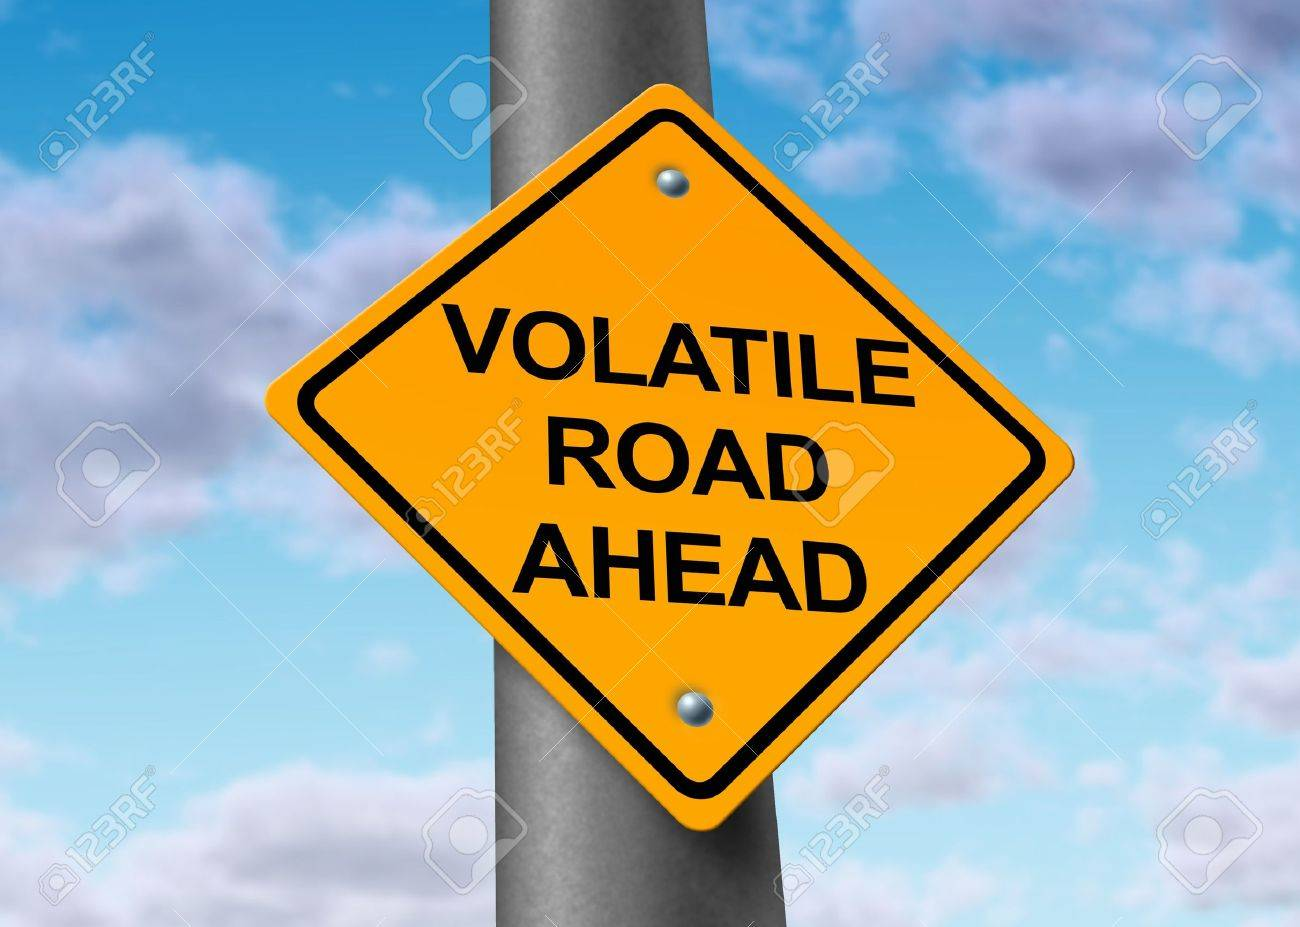 Volatility in the stock market symbol represented by a yellow road volatility in the stock market symbol represented by a yellow road warning sign showing the hazards of a volatile trading sesion at the dow jones or wall buycottarizona Choice Image